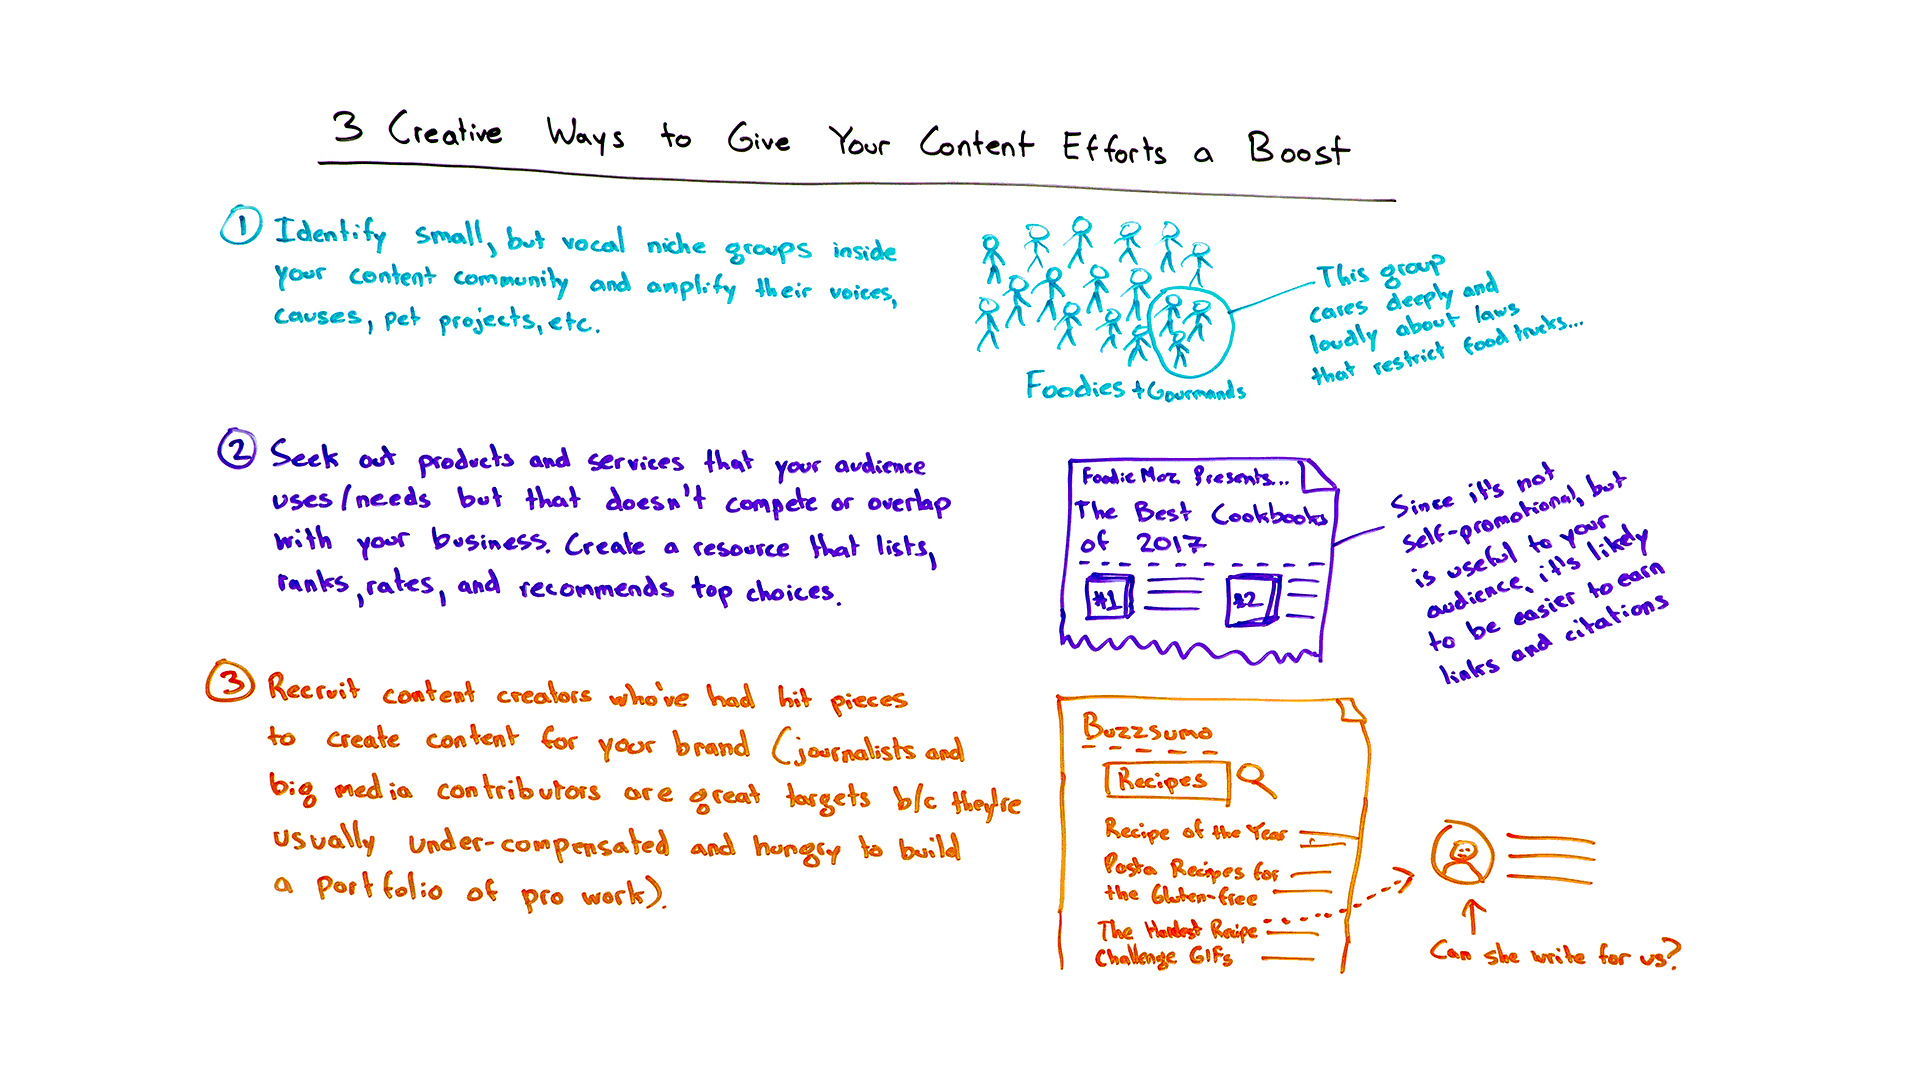 3 way to give your content efforts a boost